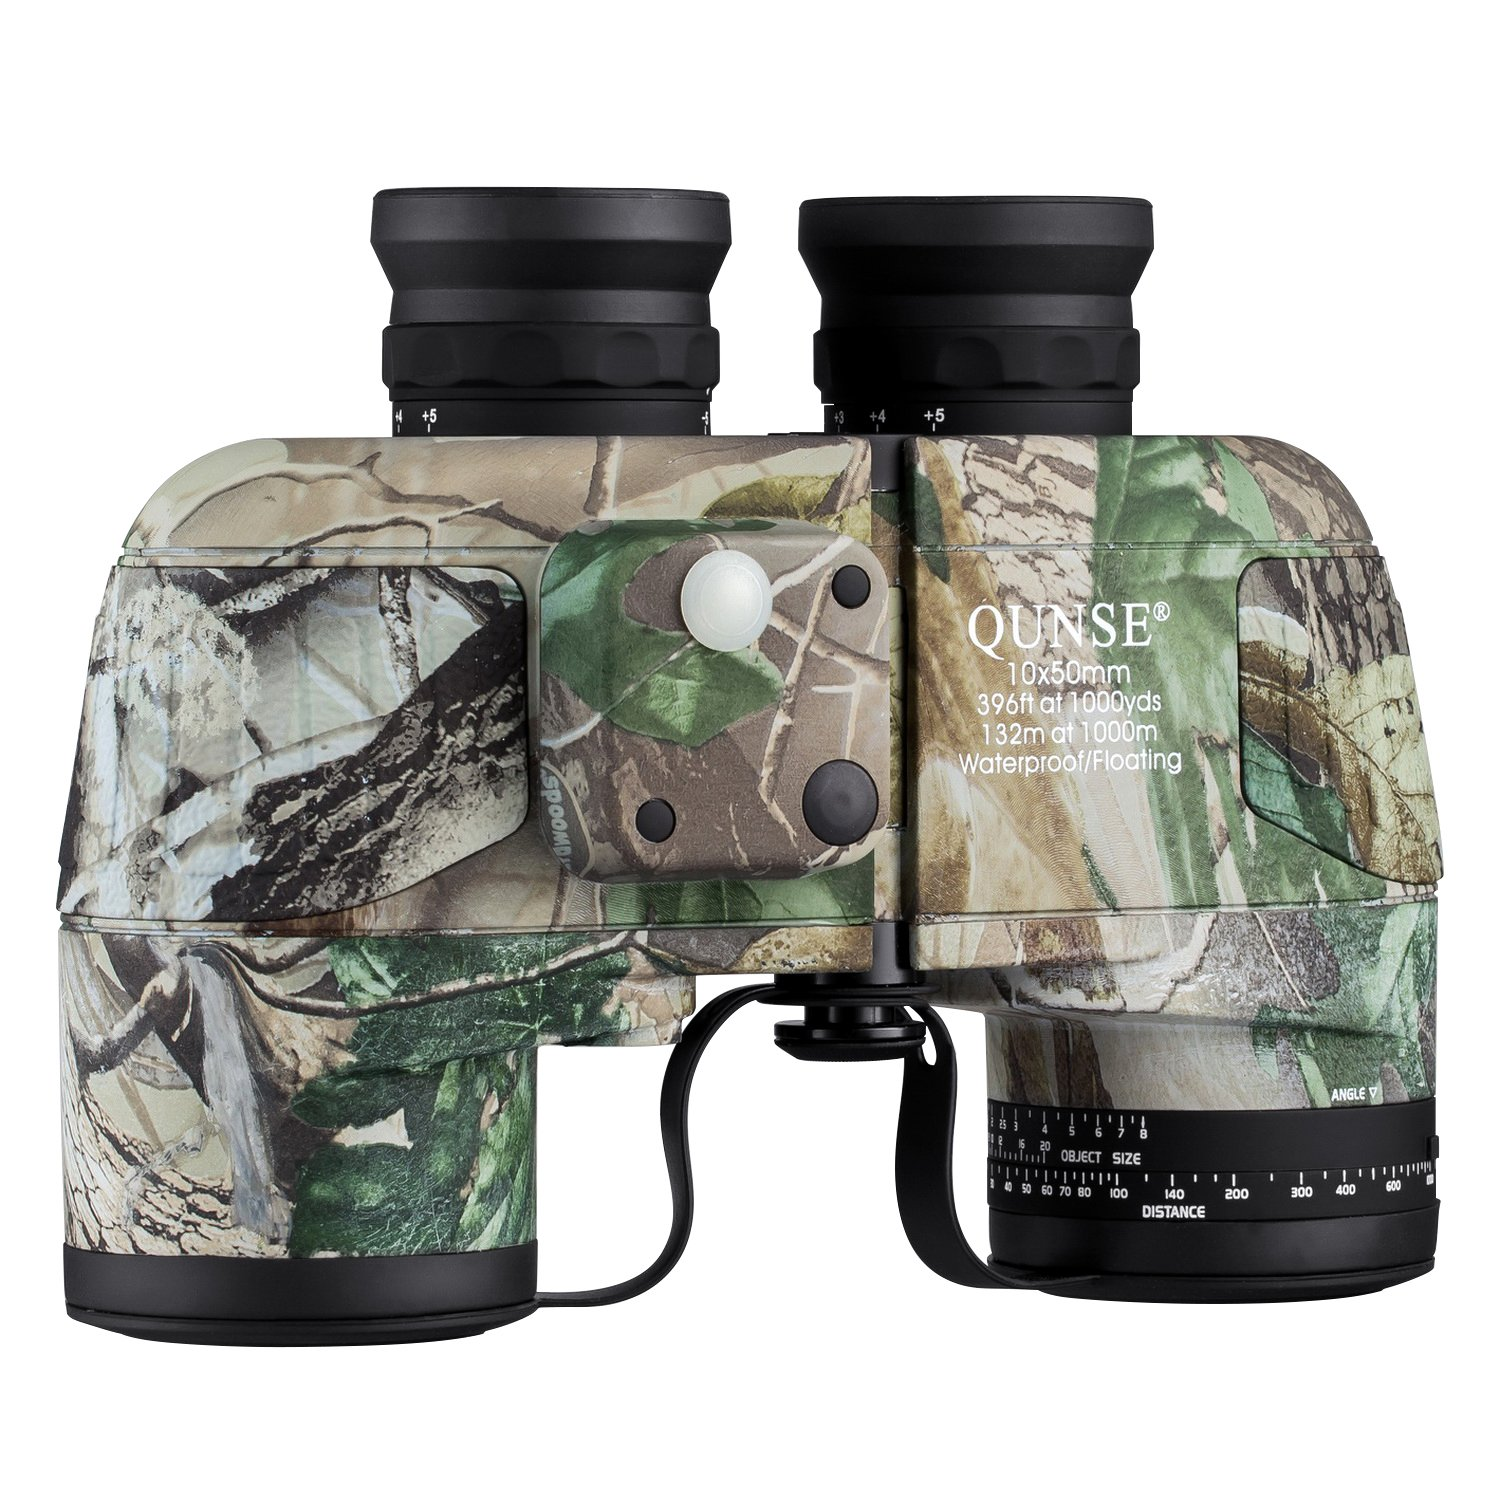 QUNSE 10x50 Military Binoculars for Adults with Range Finder and Compass, Suitable for Hunting, Bird Watching and Traveling (10x50, Army) by QUNSE